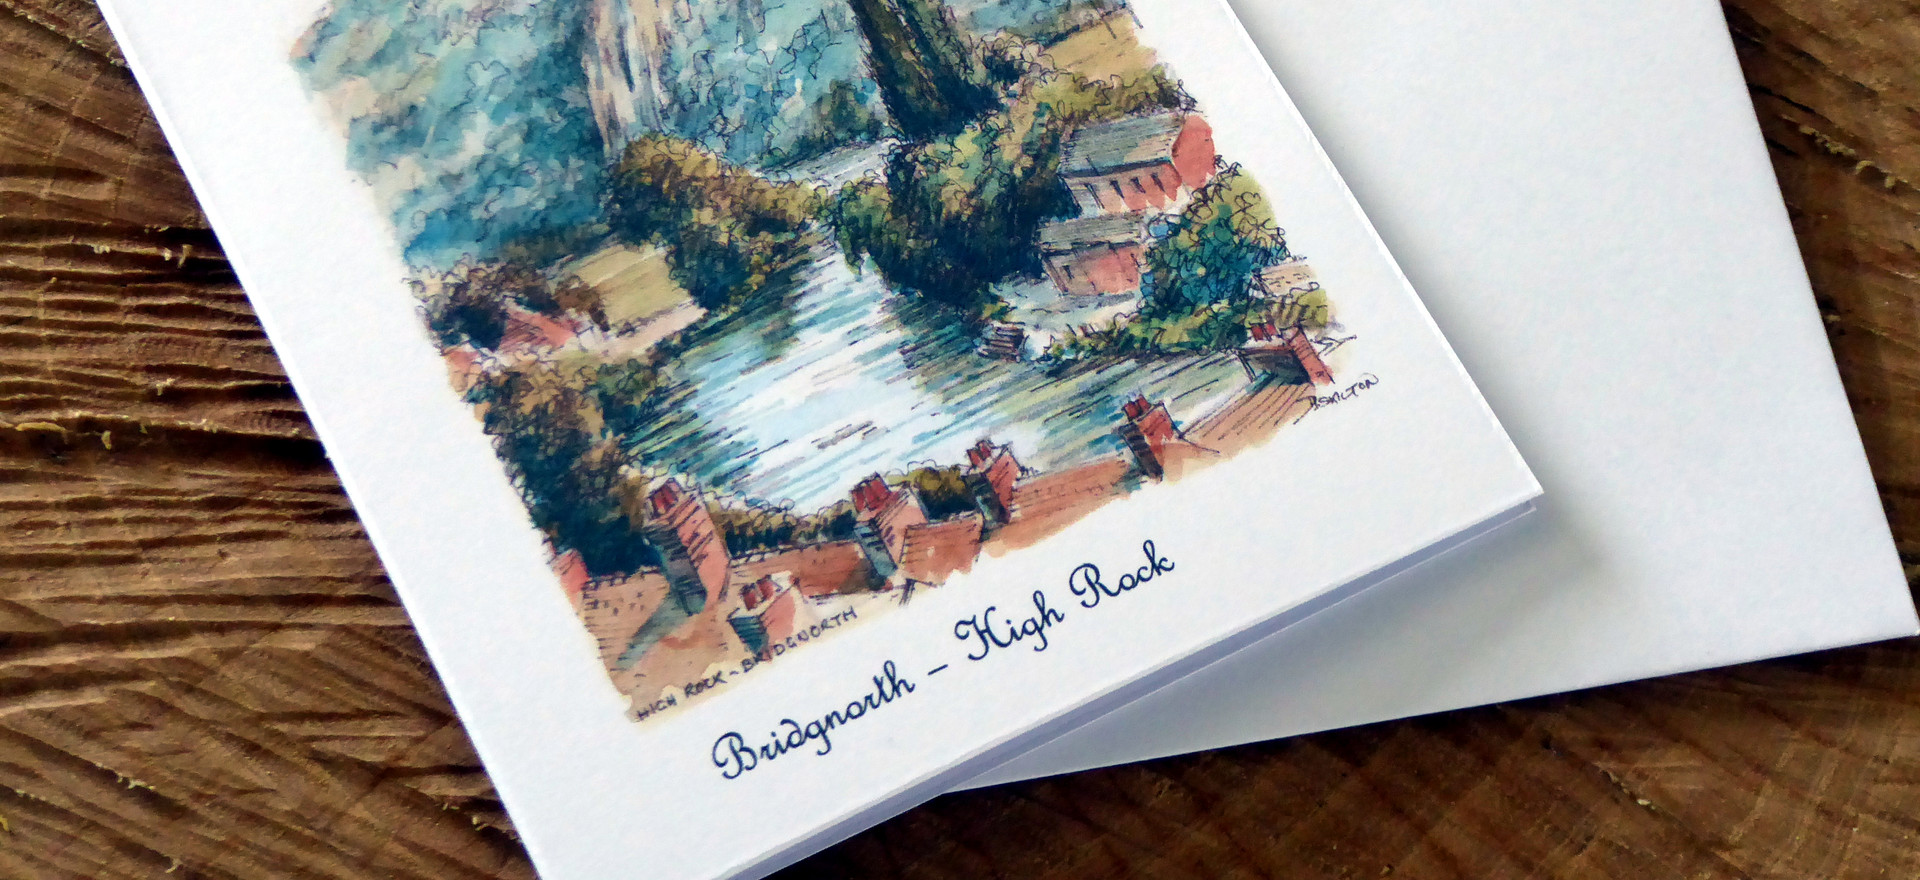 A card featuring a view Bridgnorth's High Rock